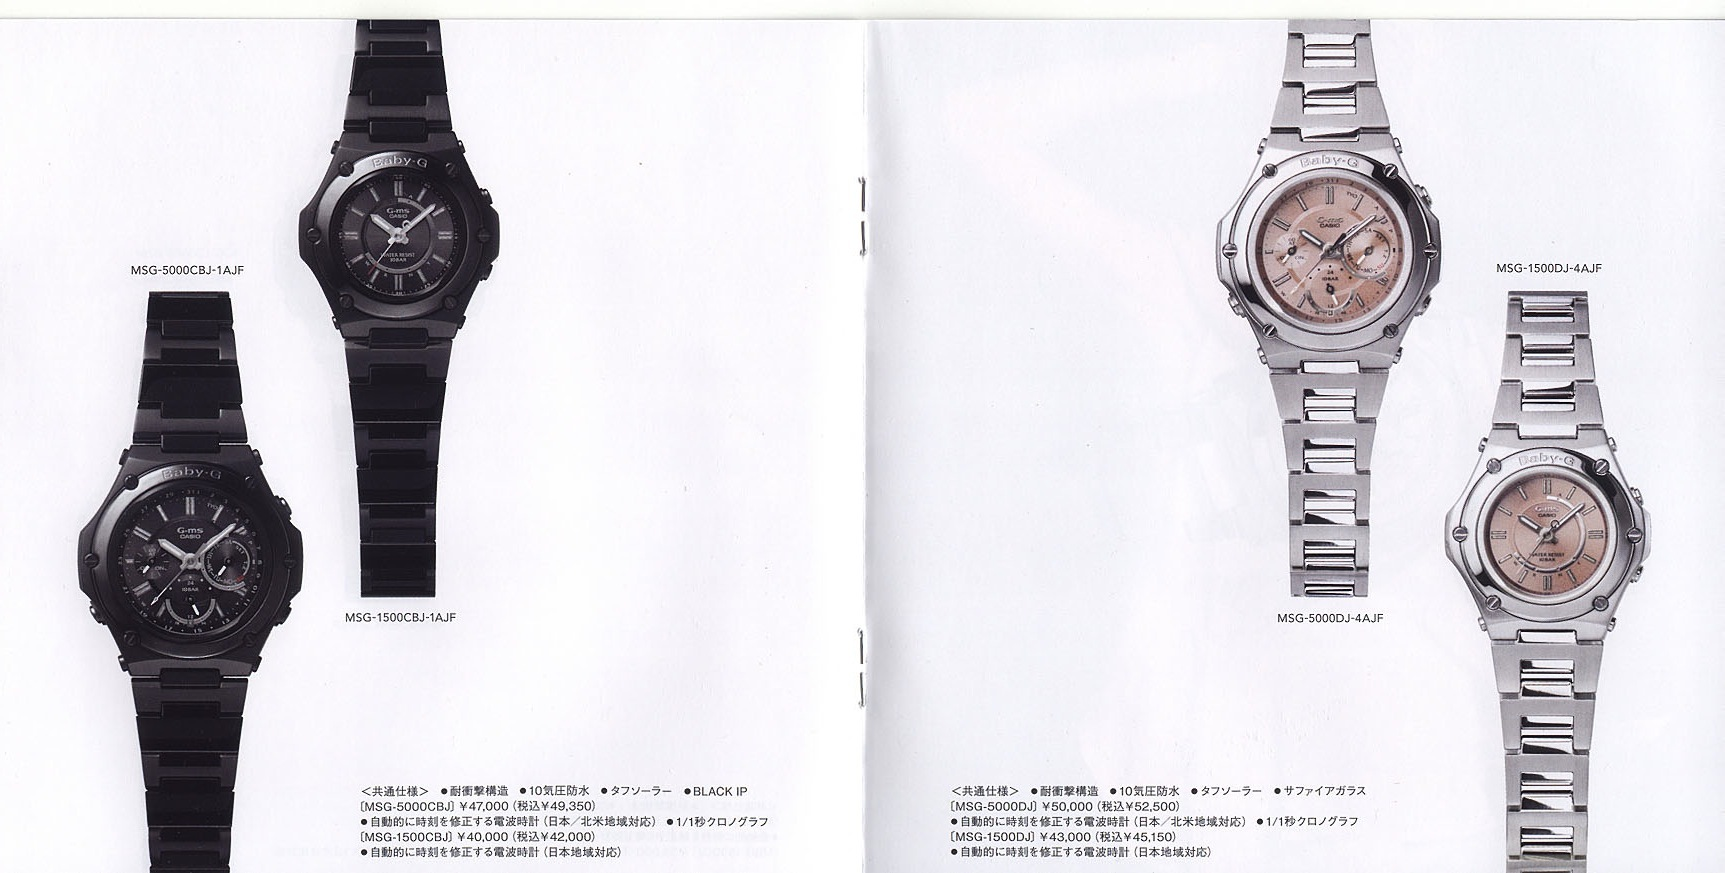 Baby-G-Casio-watches-2009-Catalog-Page-5.jpg